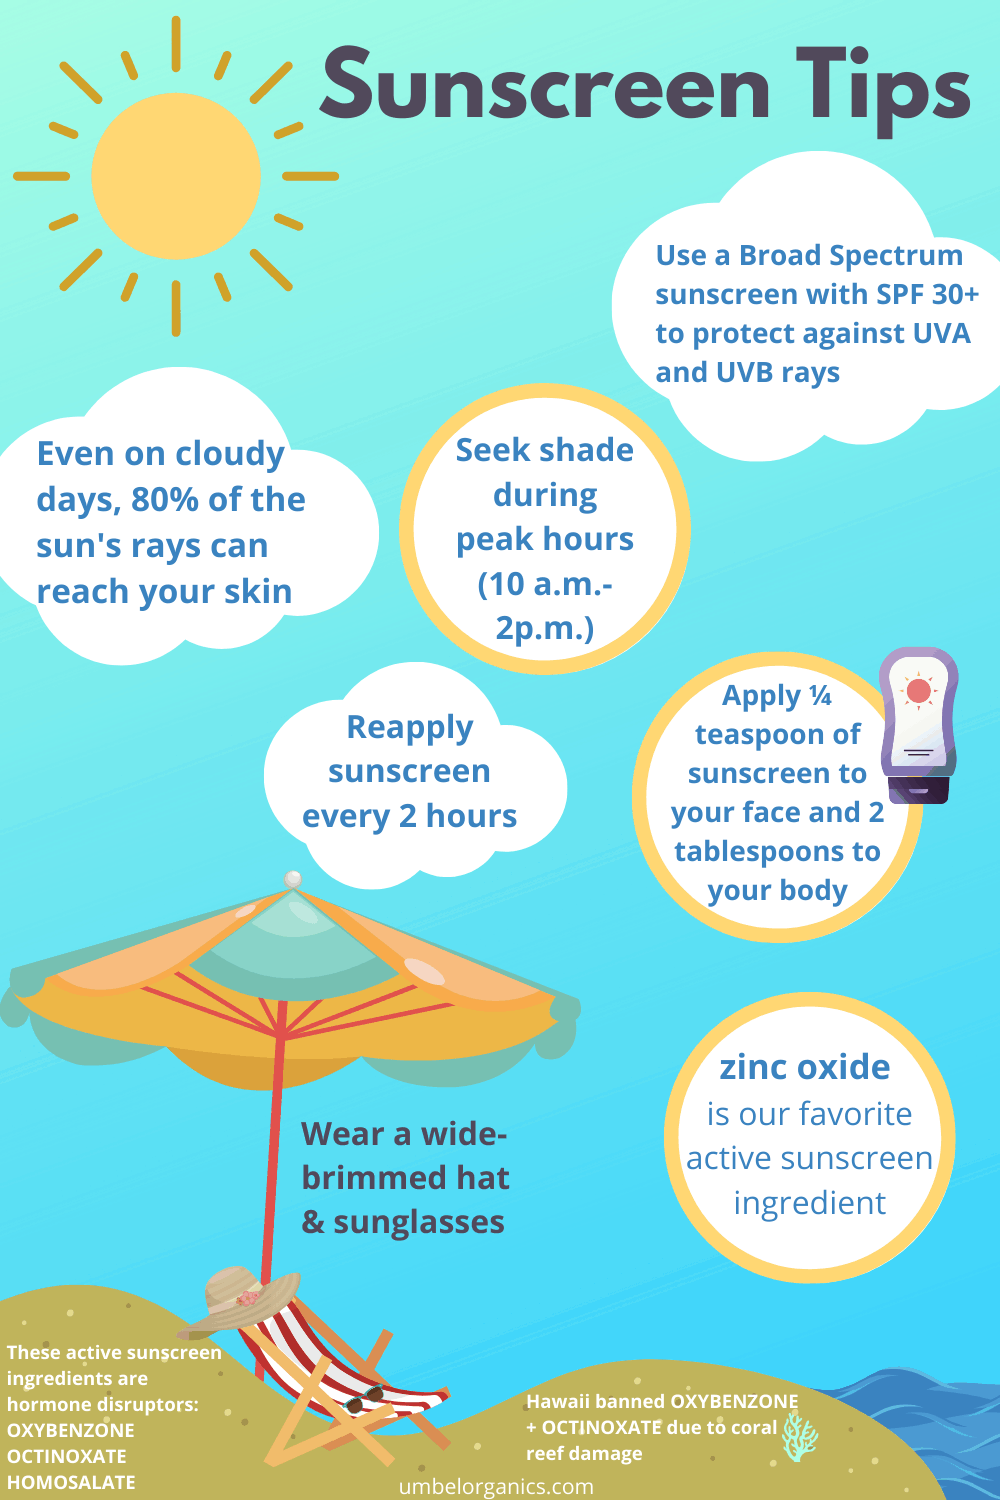 Infographic on sunscreen tips